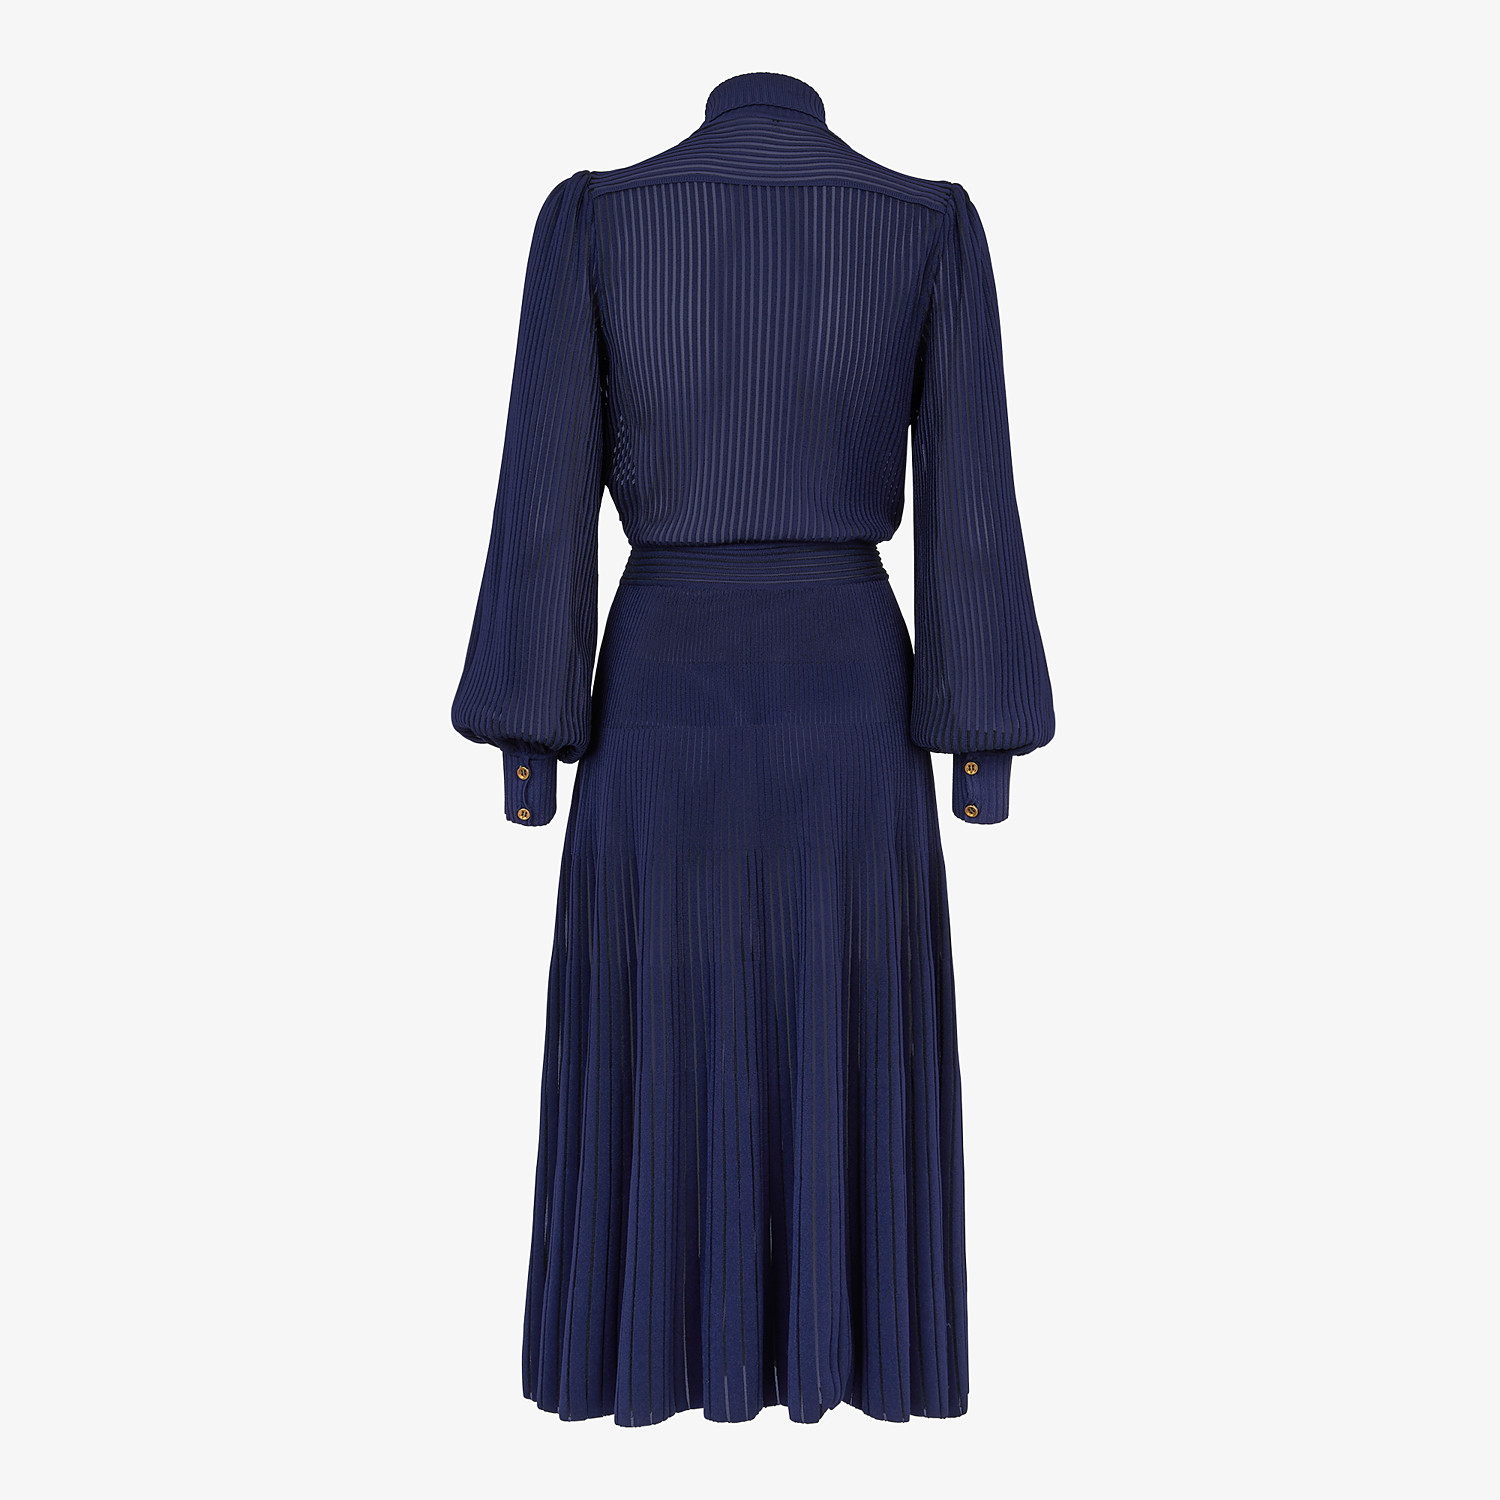 FENDI DRESS - Blue viscose dress - view 2 detail